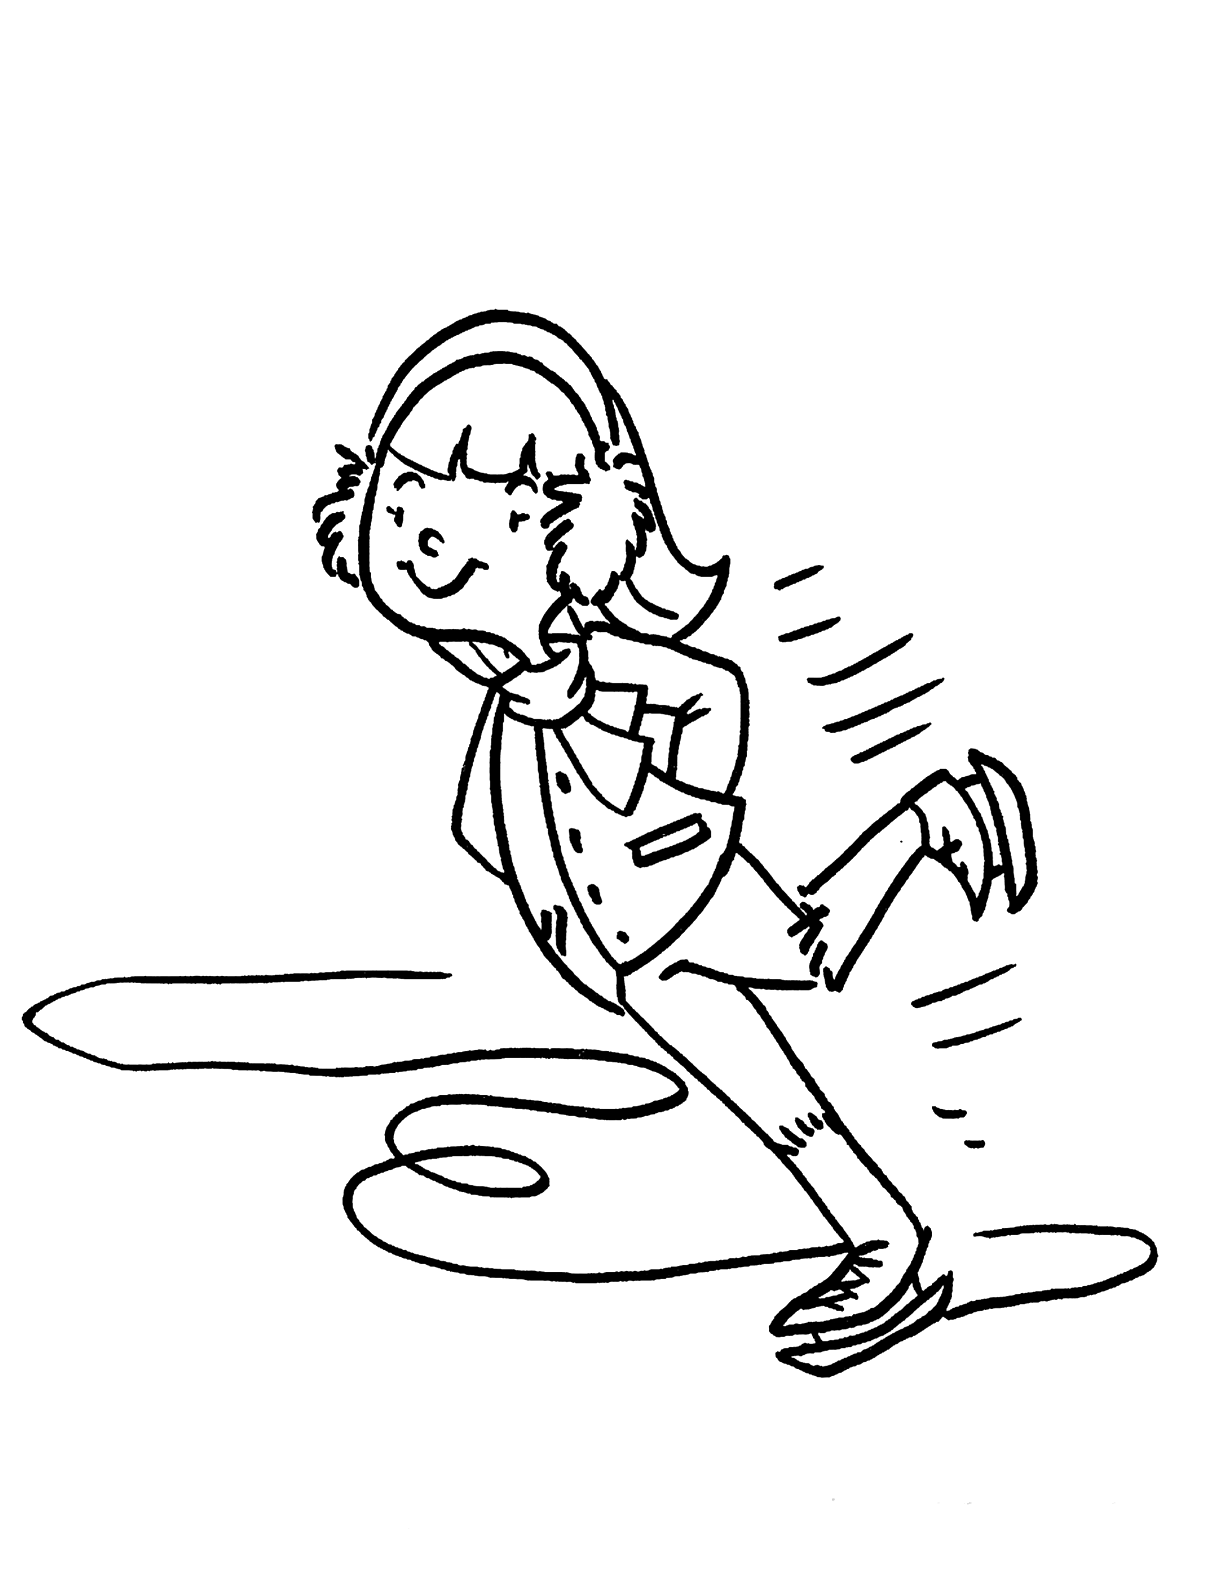 Kids Ice Skating Coloring Pages Az Coloring Pages Coloring Pages Skating